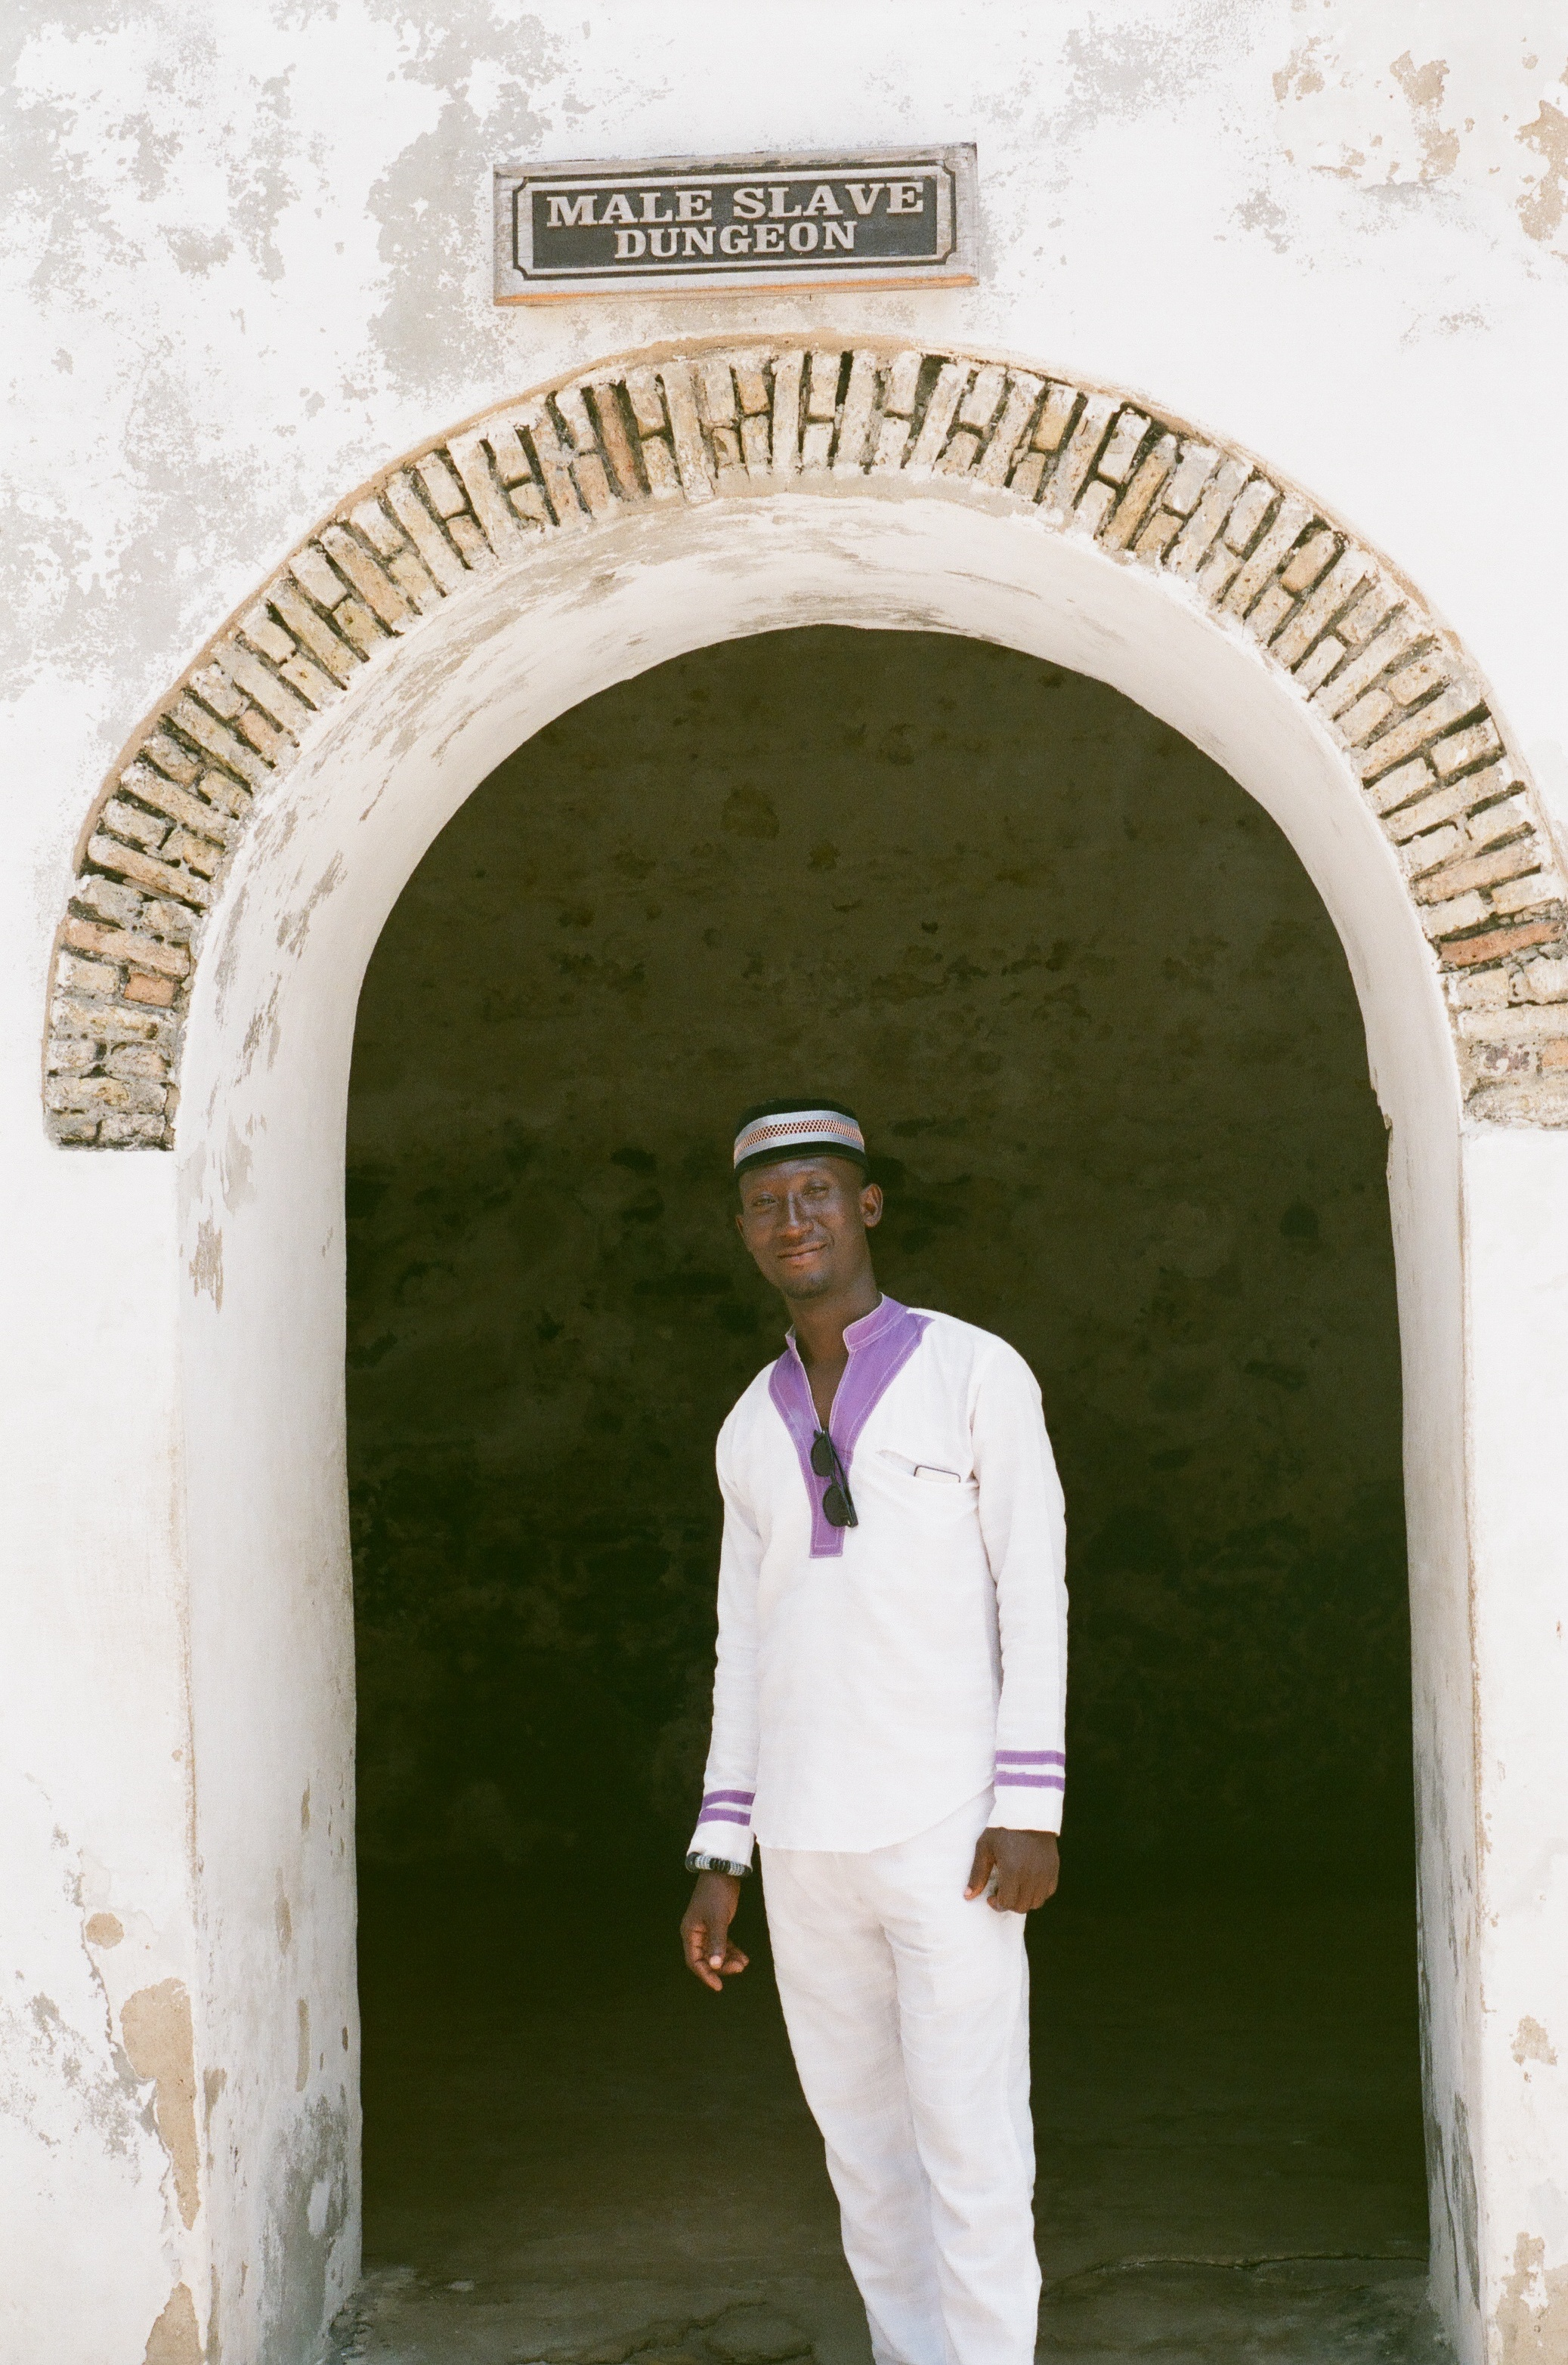 This image of a castle guide standing in front of the entrance to male slave dungeons is a testament to miracle of survival.